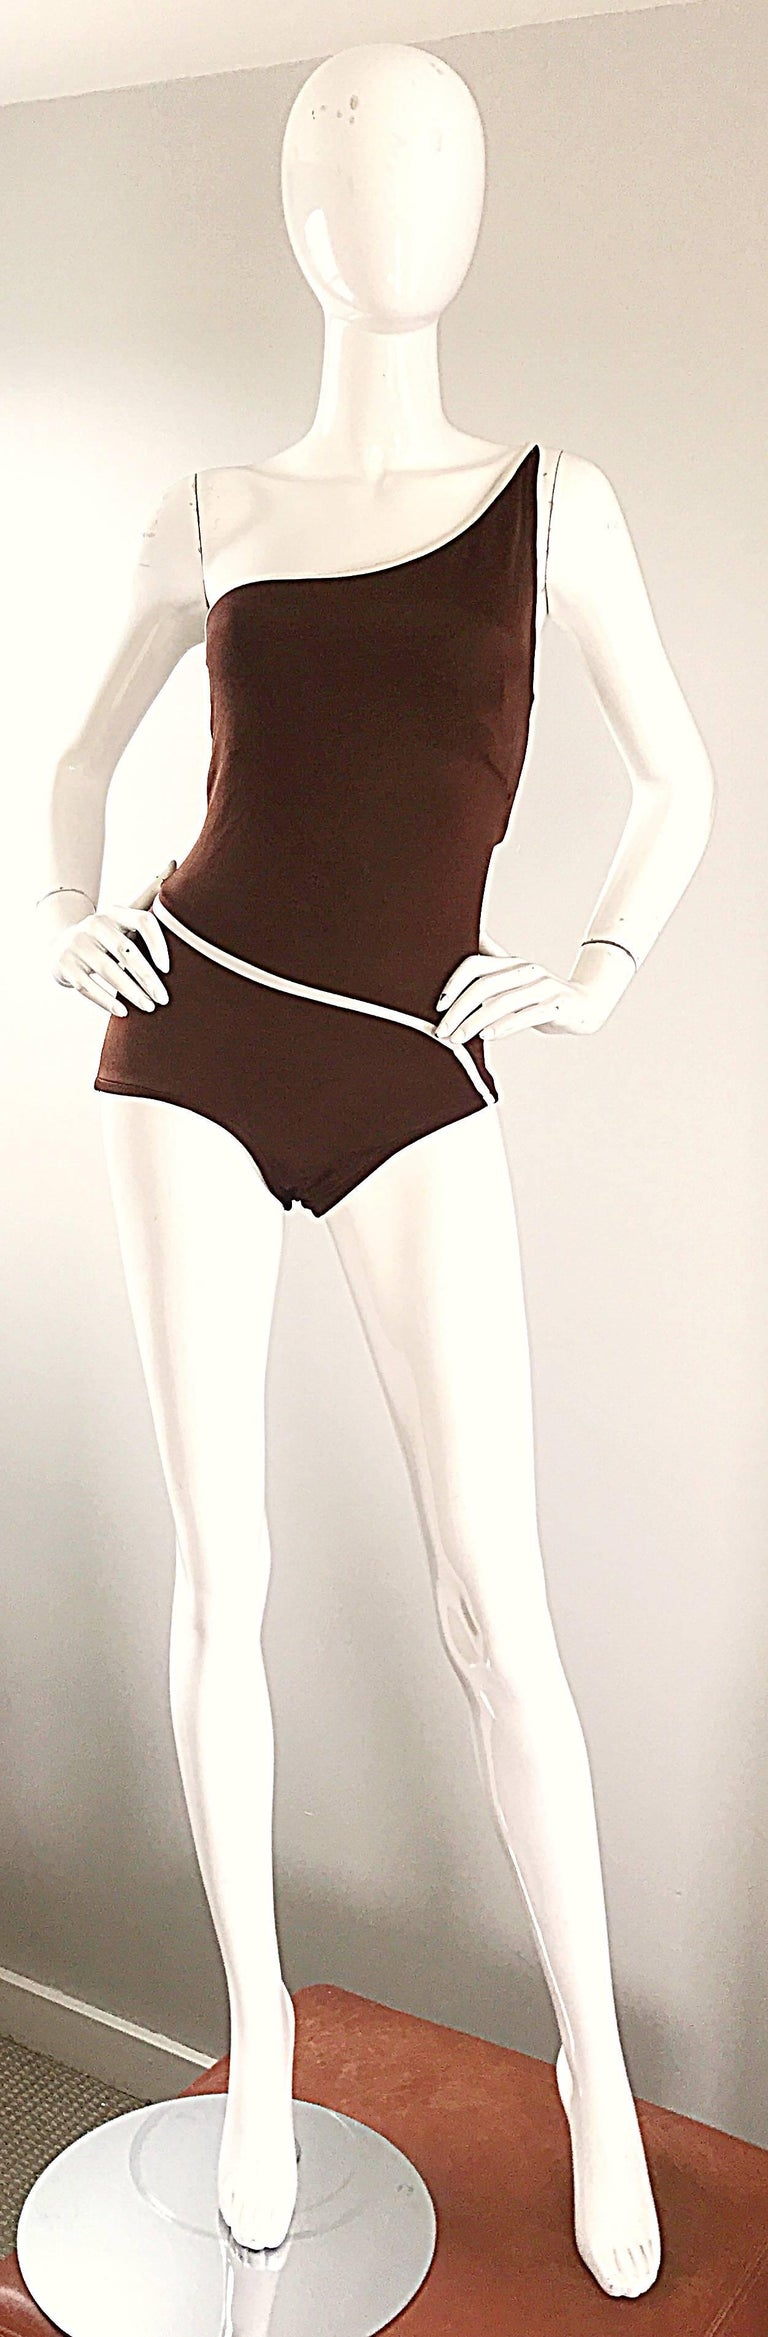 Sexy 70s BILL BLASS chocolate brown and white one shoulder swimsuit or bodysuit! Features a sloped with stripe at waistband, and above the bust. Built in interior support at bust. Great for the beach, pool, or paired with shorts, jeans, or a skirt